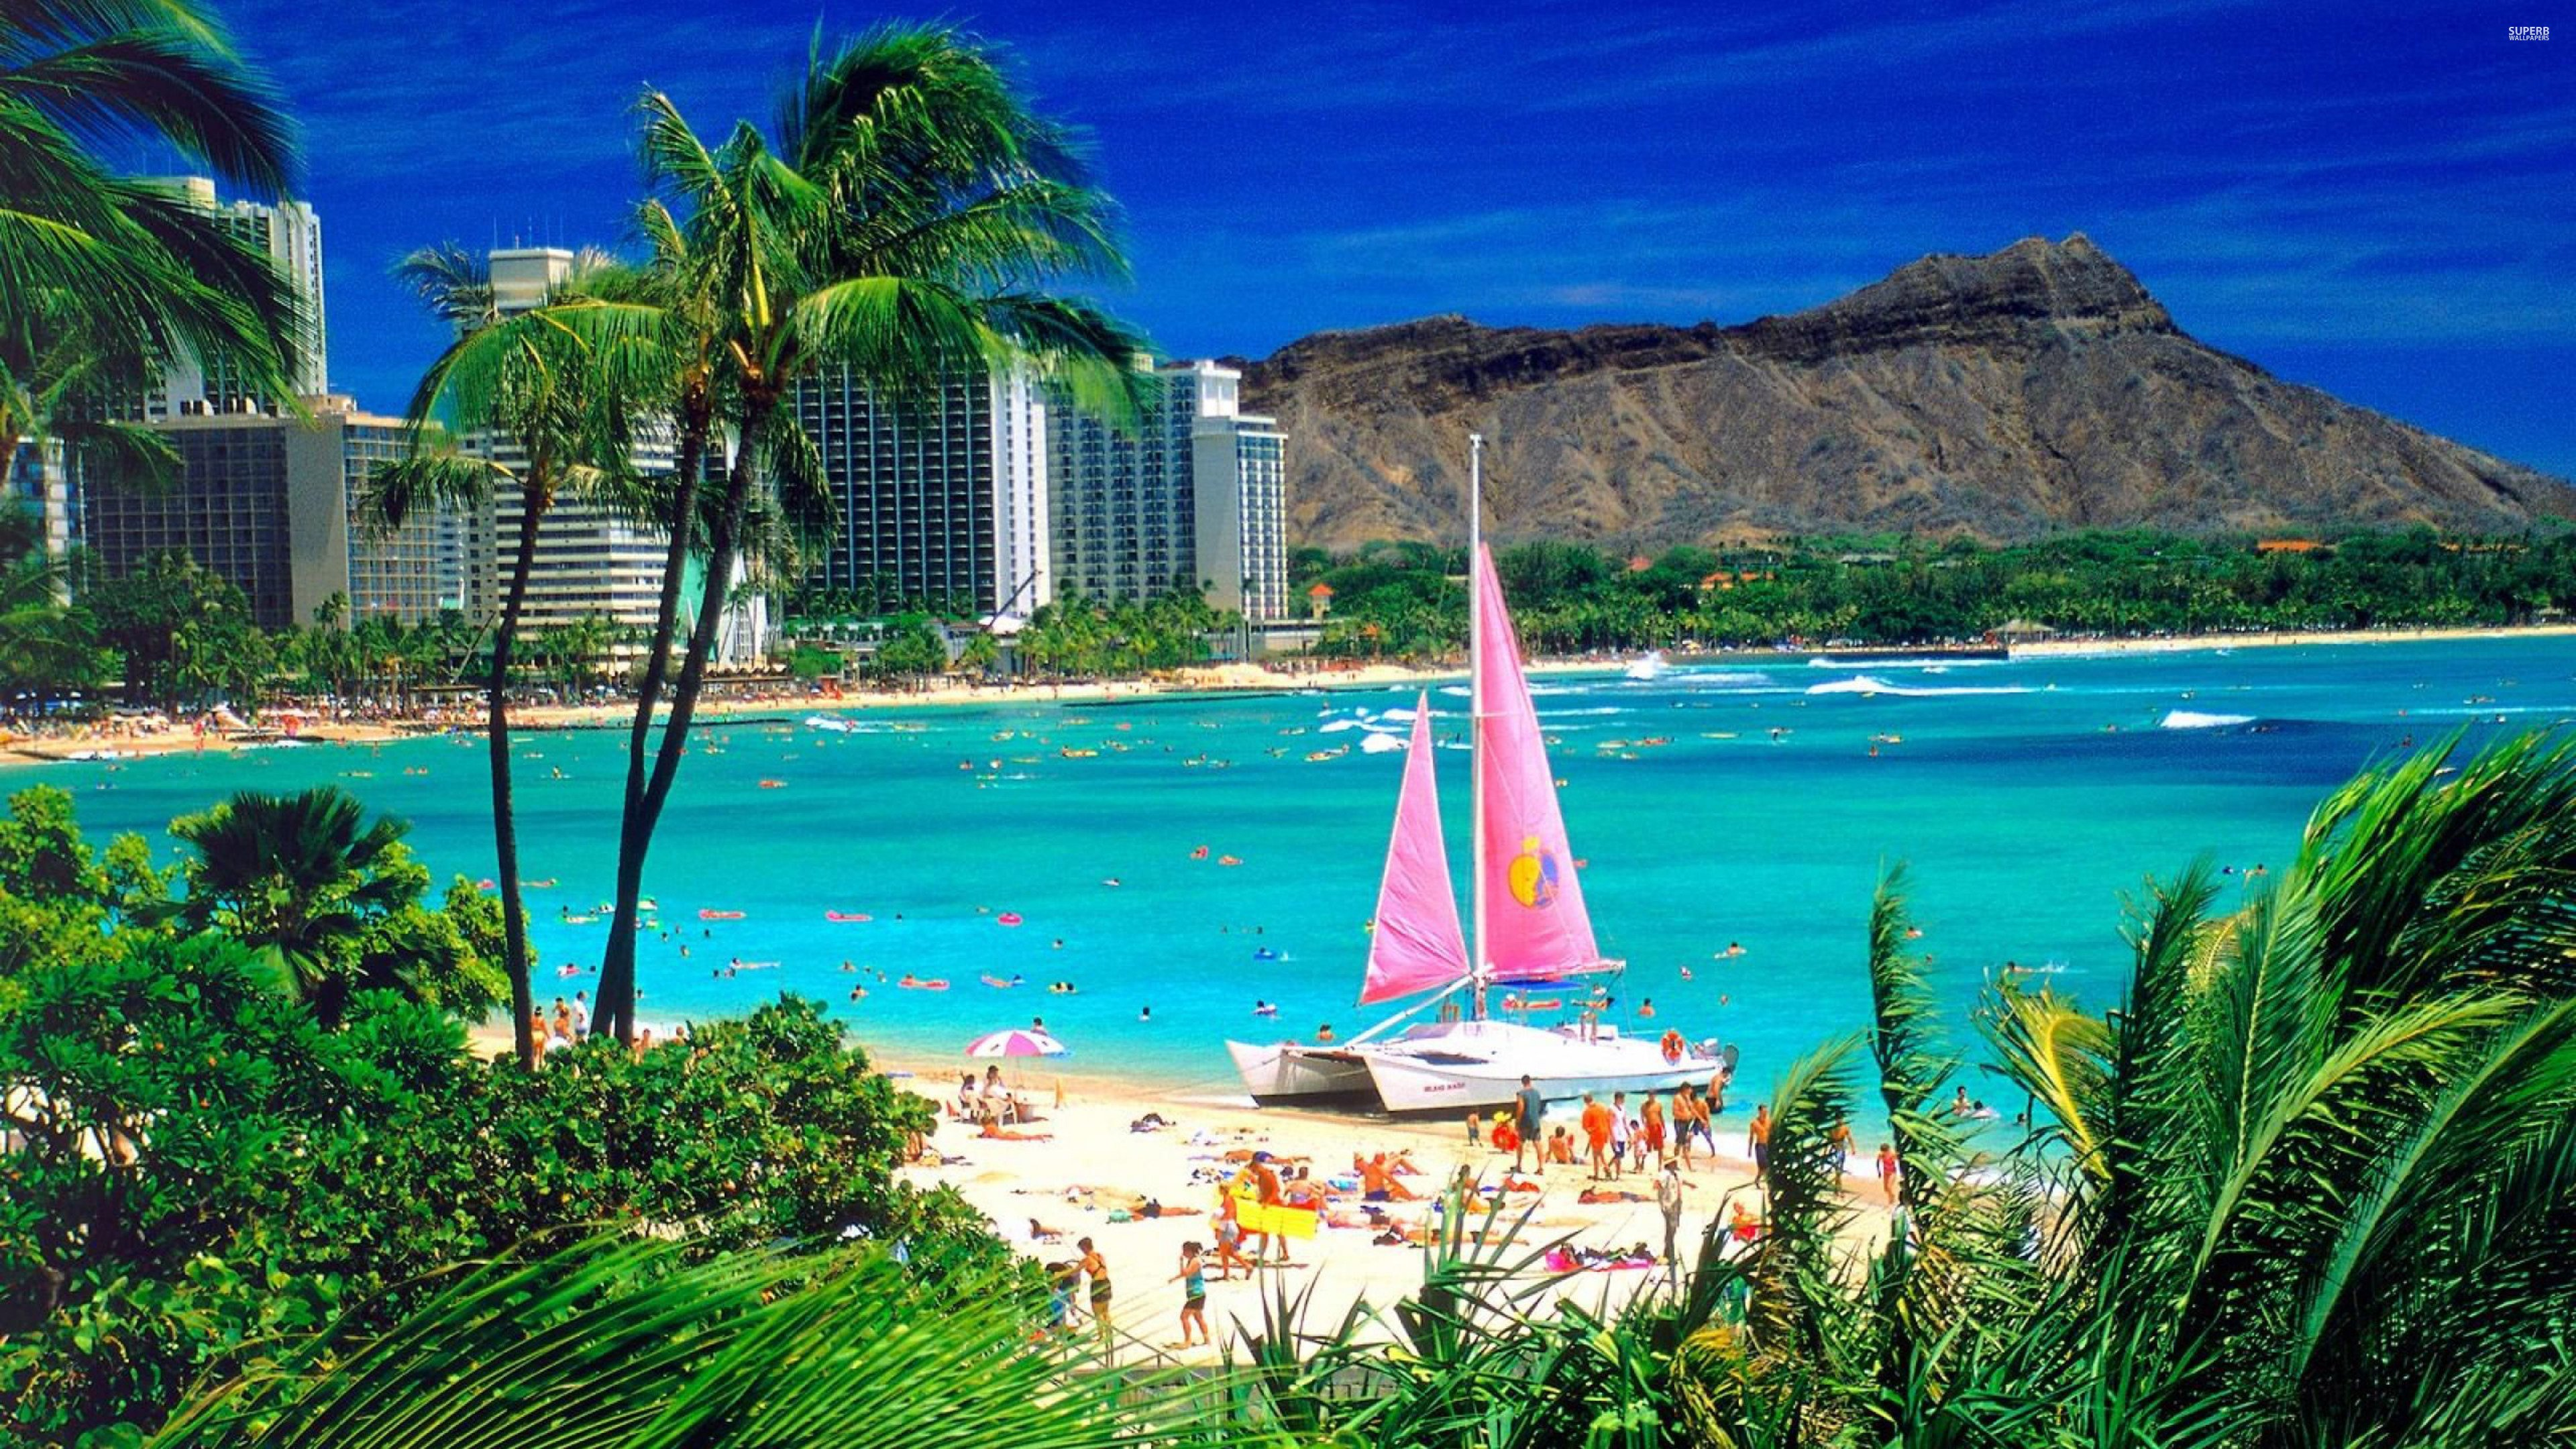 Waikiki-beach-1840-3840x2160 wallpaper | 3840x2160 | 317541 ...